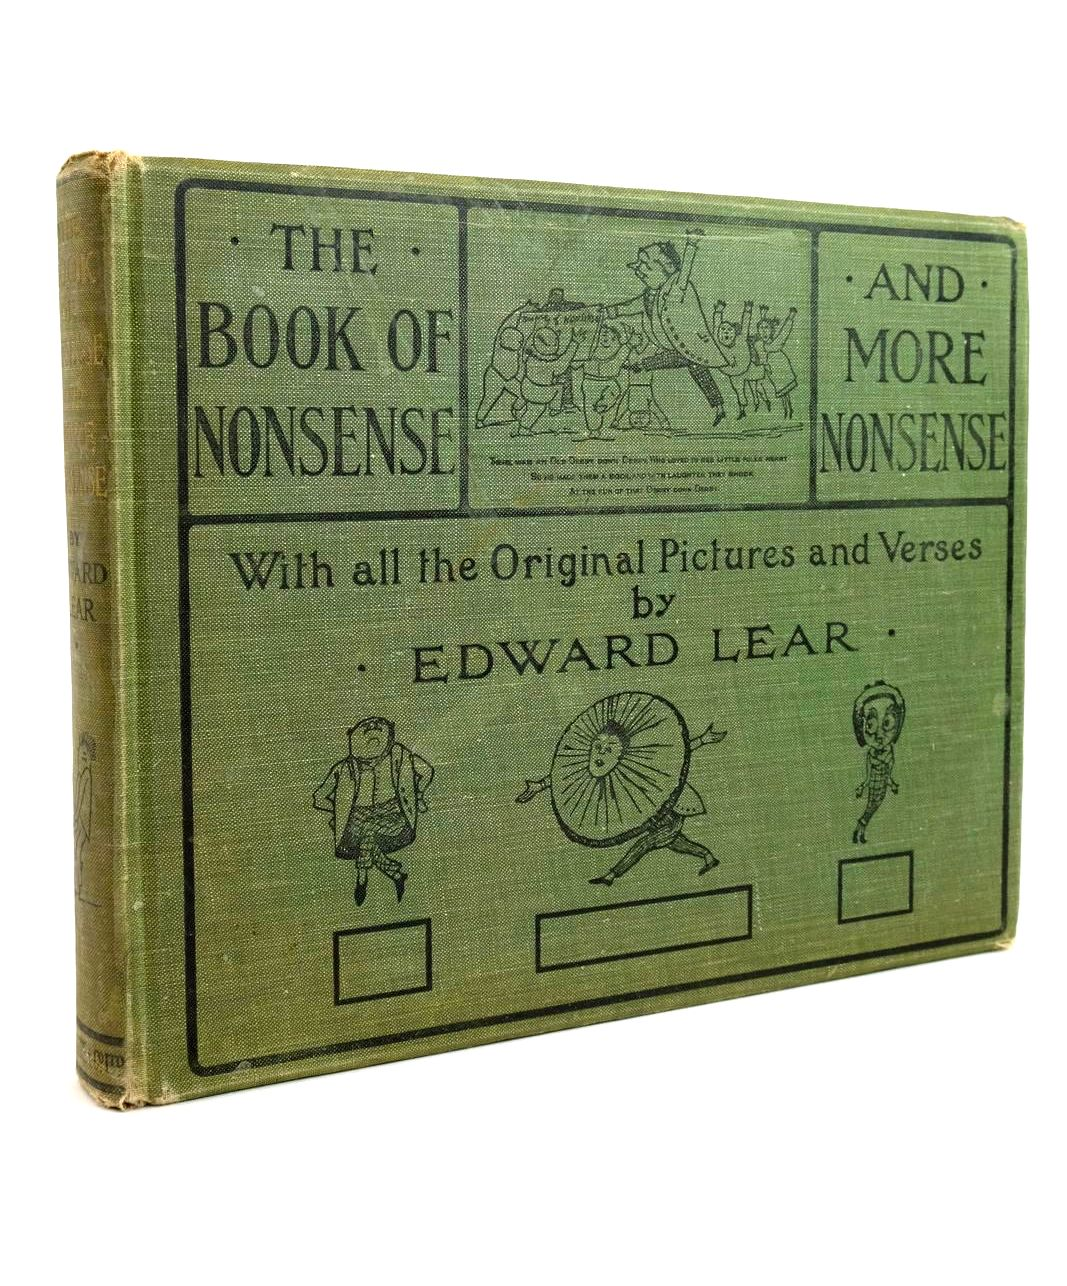 Photo of THE BOOK OF NONSENSE AND MORE NONSENSE written by Lear, Edward illustrated by Lear, Edward published by Frederick Warne & Co Ltd. (STOCK CODE: 1321694)  for sale by Stella & Rose's Books